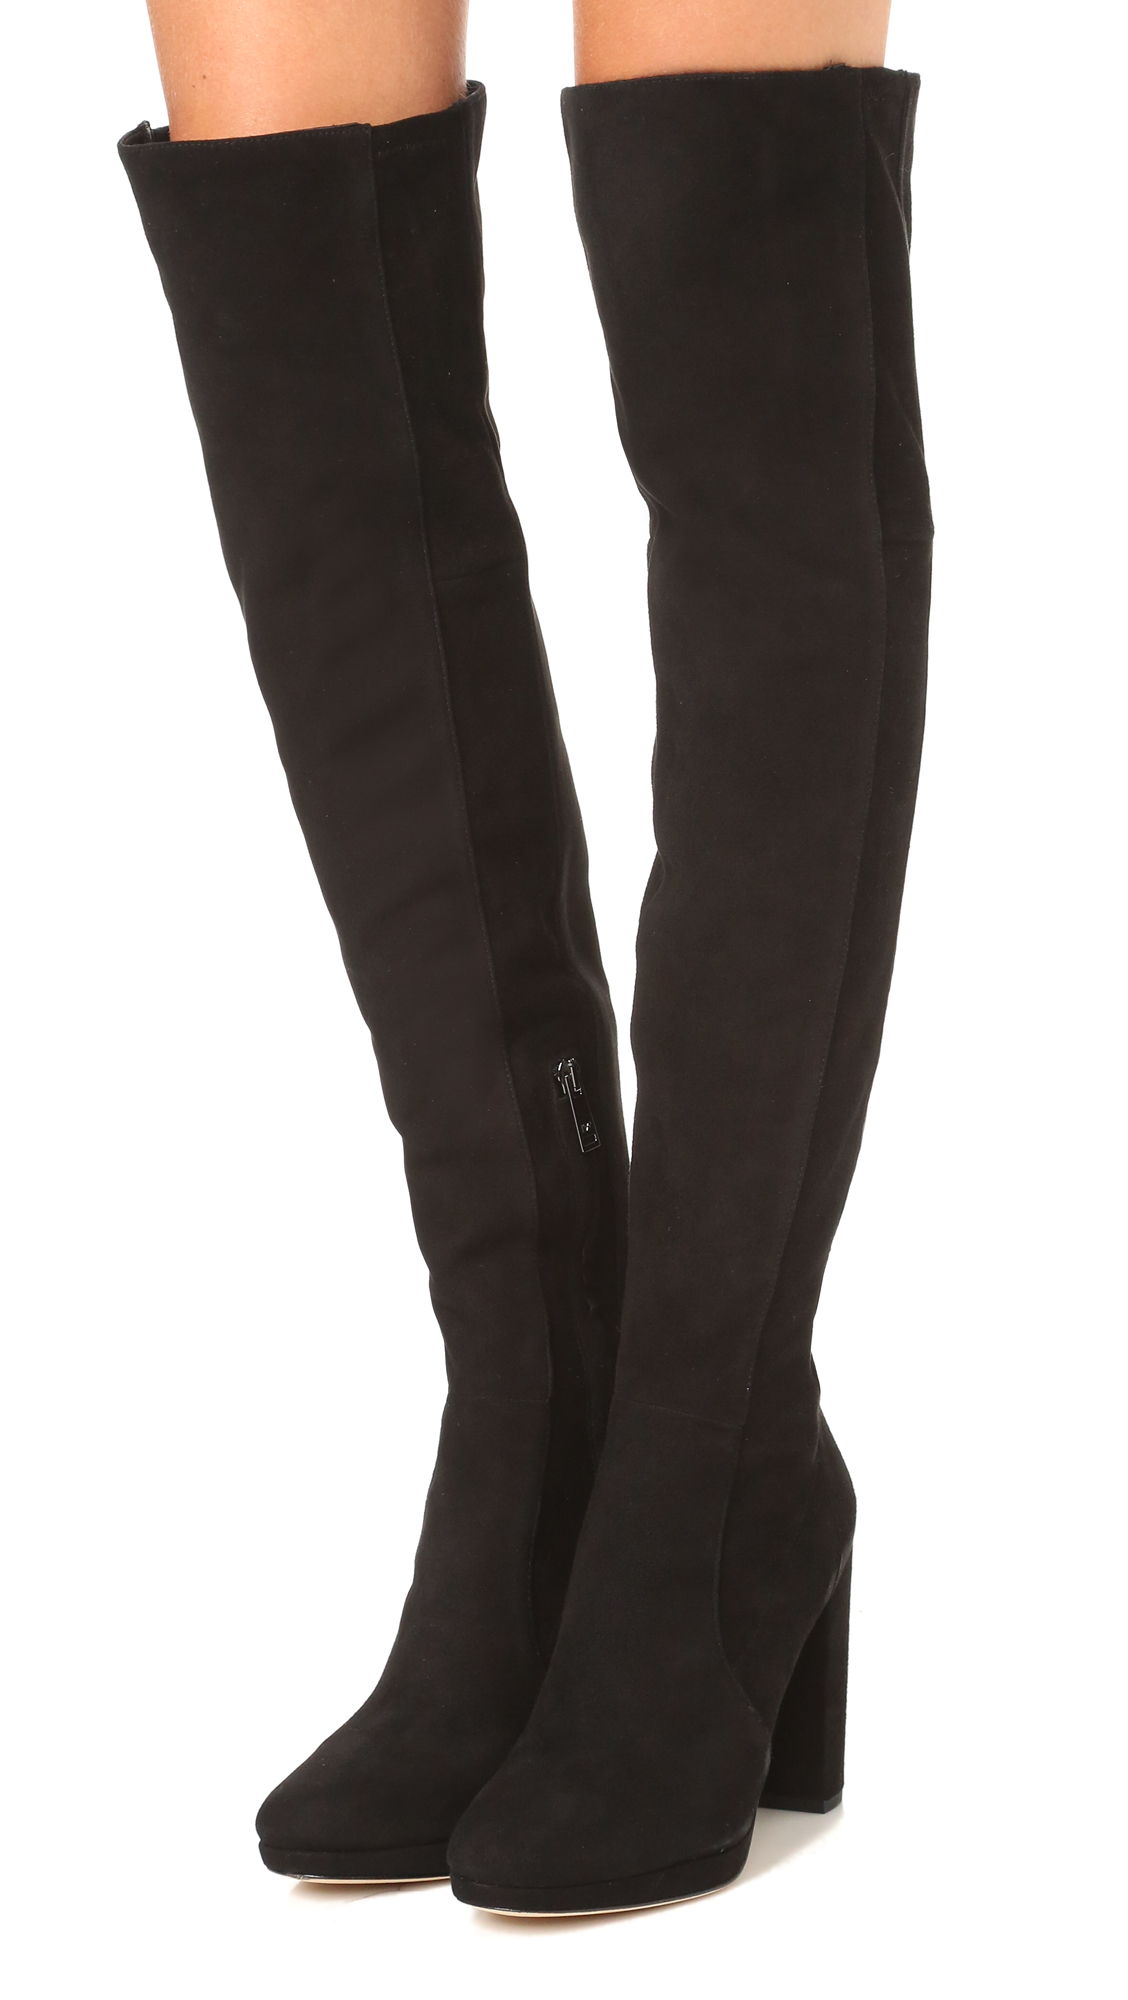 Outlet Official Site Cheap 100% Original Diane von Furstenberg Woman Suede Over-the-knee Boots Size 7 Cheapest Cheap Sale Extremely Clearance Online Amazon Qu2YRcC